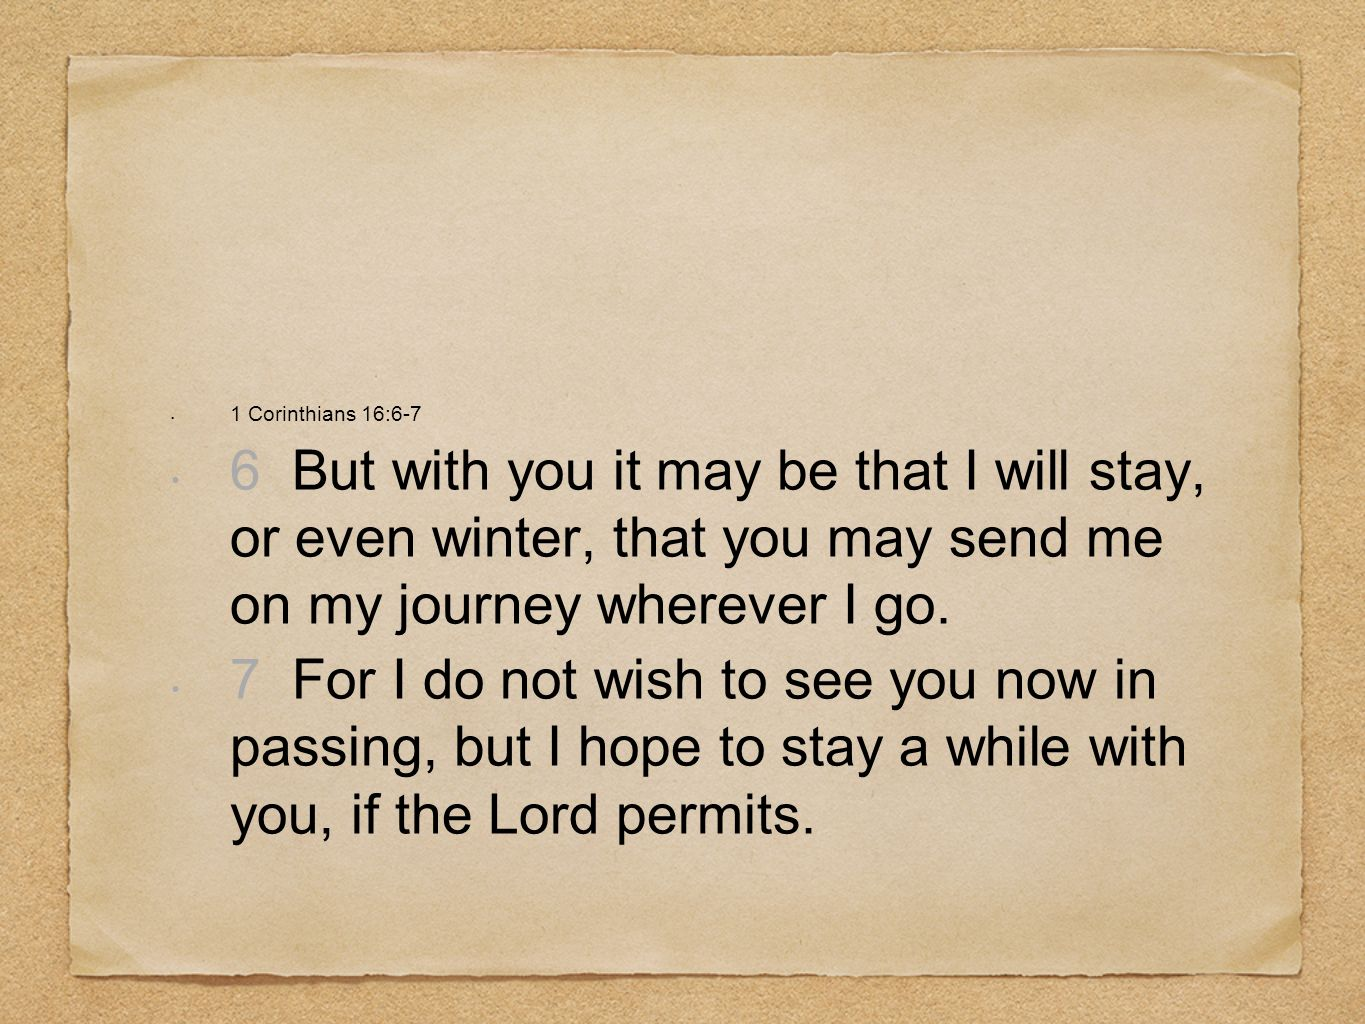 1 Corinthians 16:6-7 6 But with you it may be that I will stay, or even winter, that you may send me on my journey wherever I go.